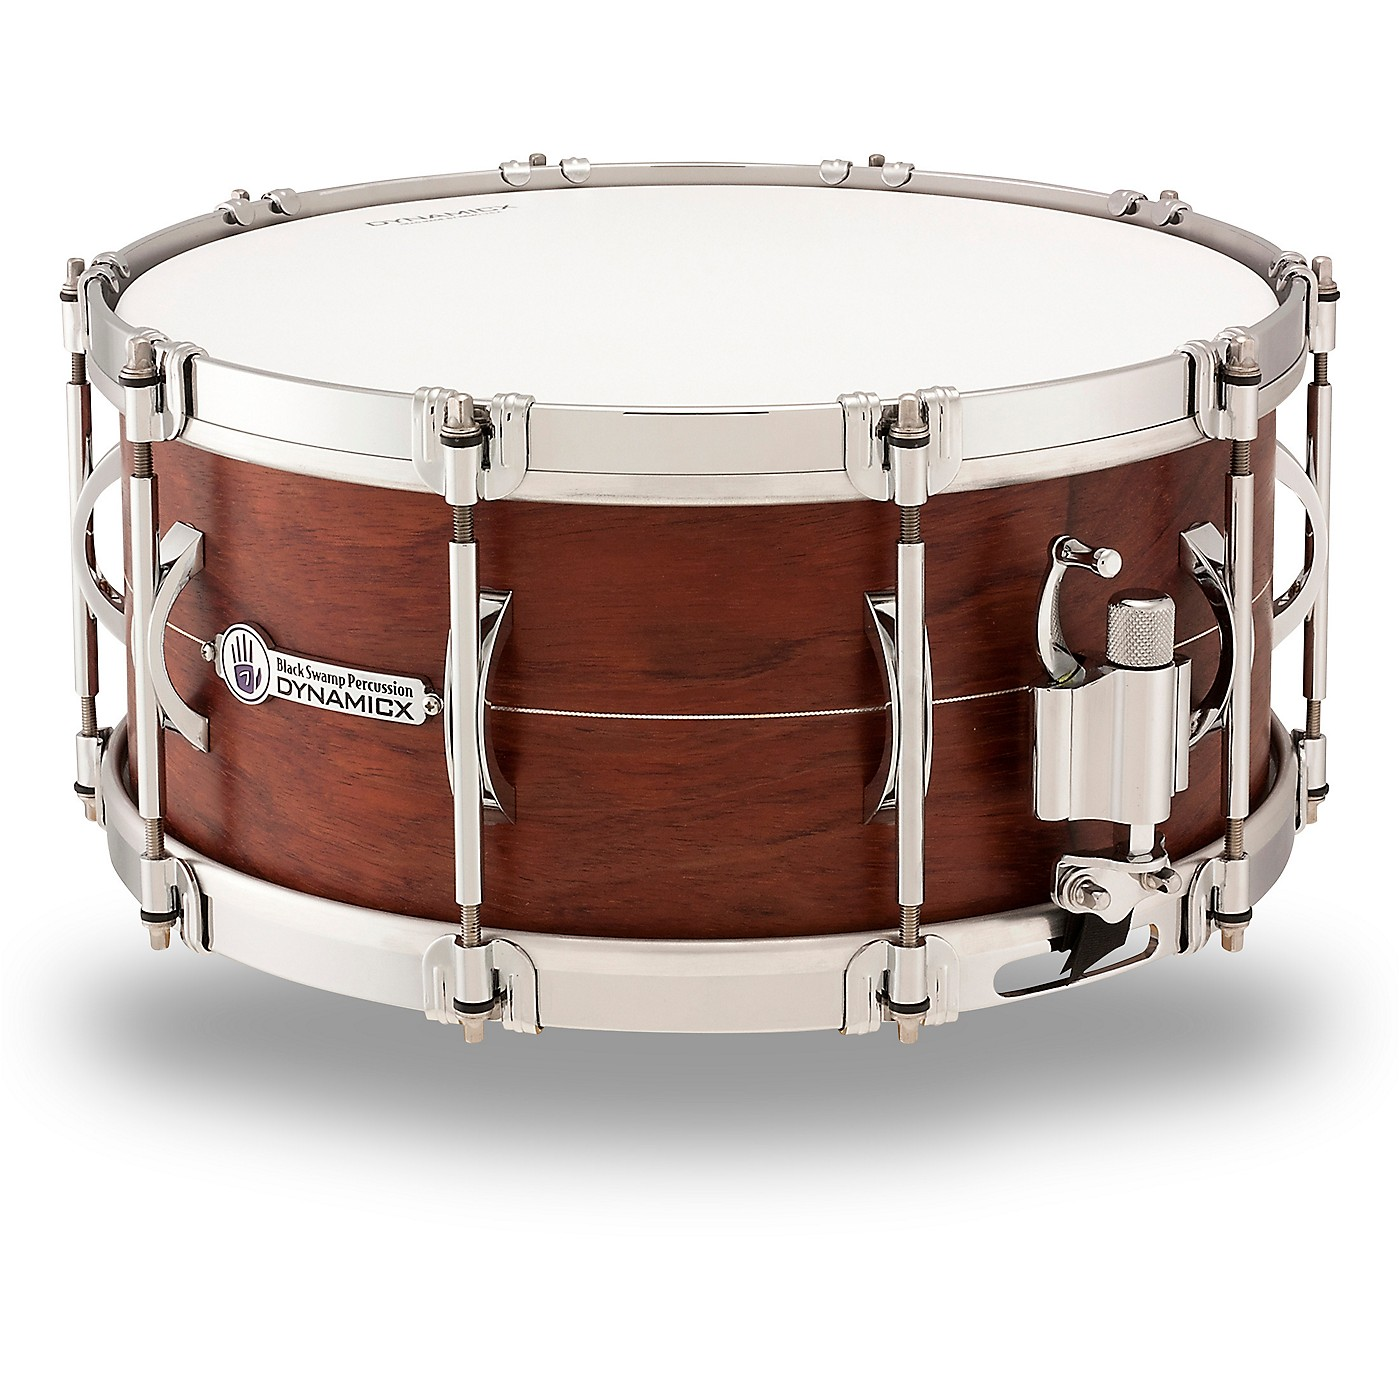 Black Swamp Percussion Dynamicx Sterling Series Snare Drum thumbnail